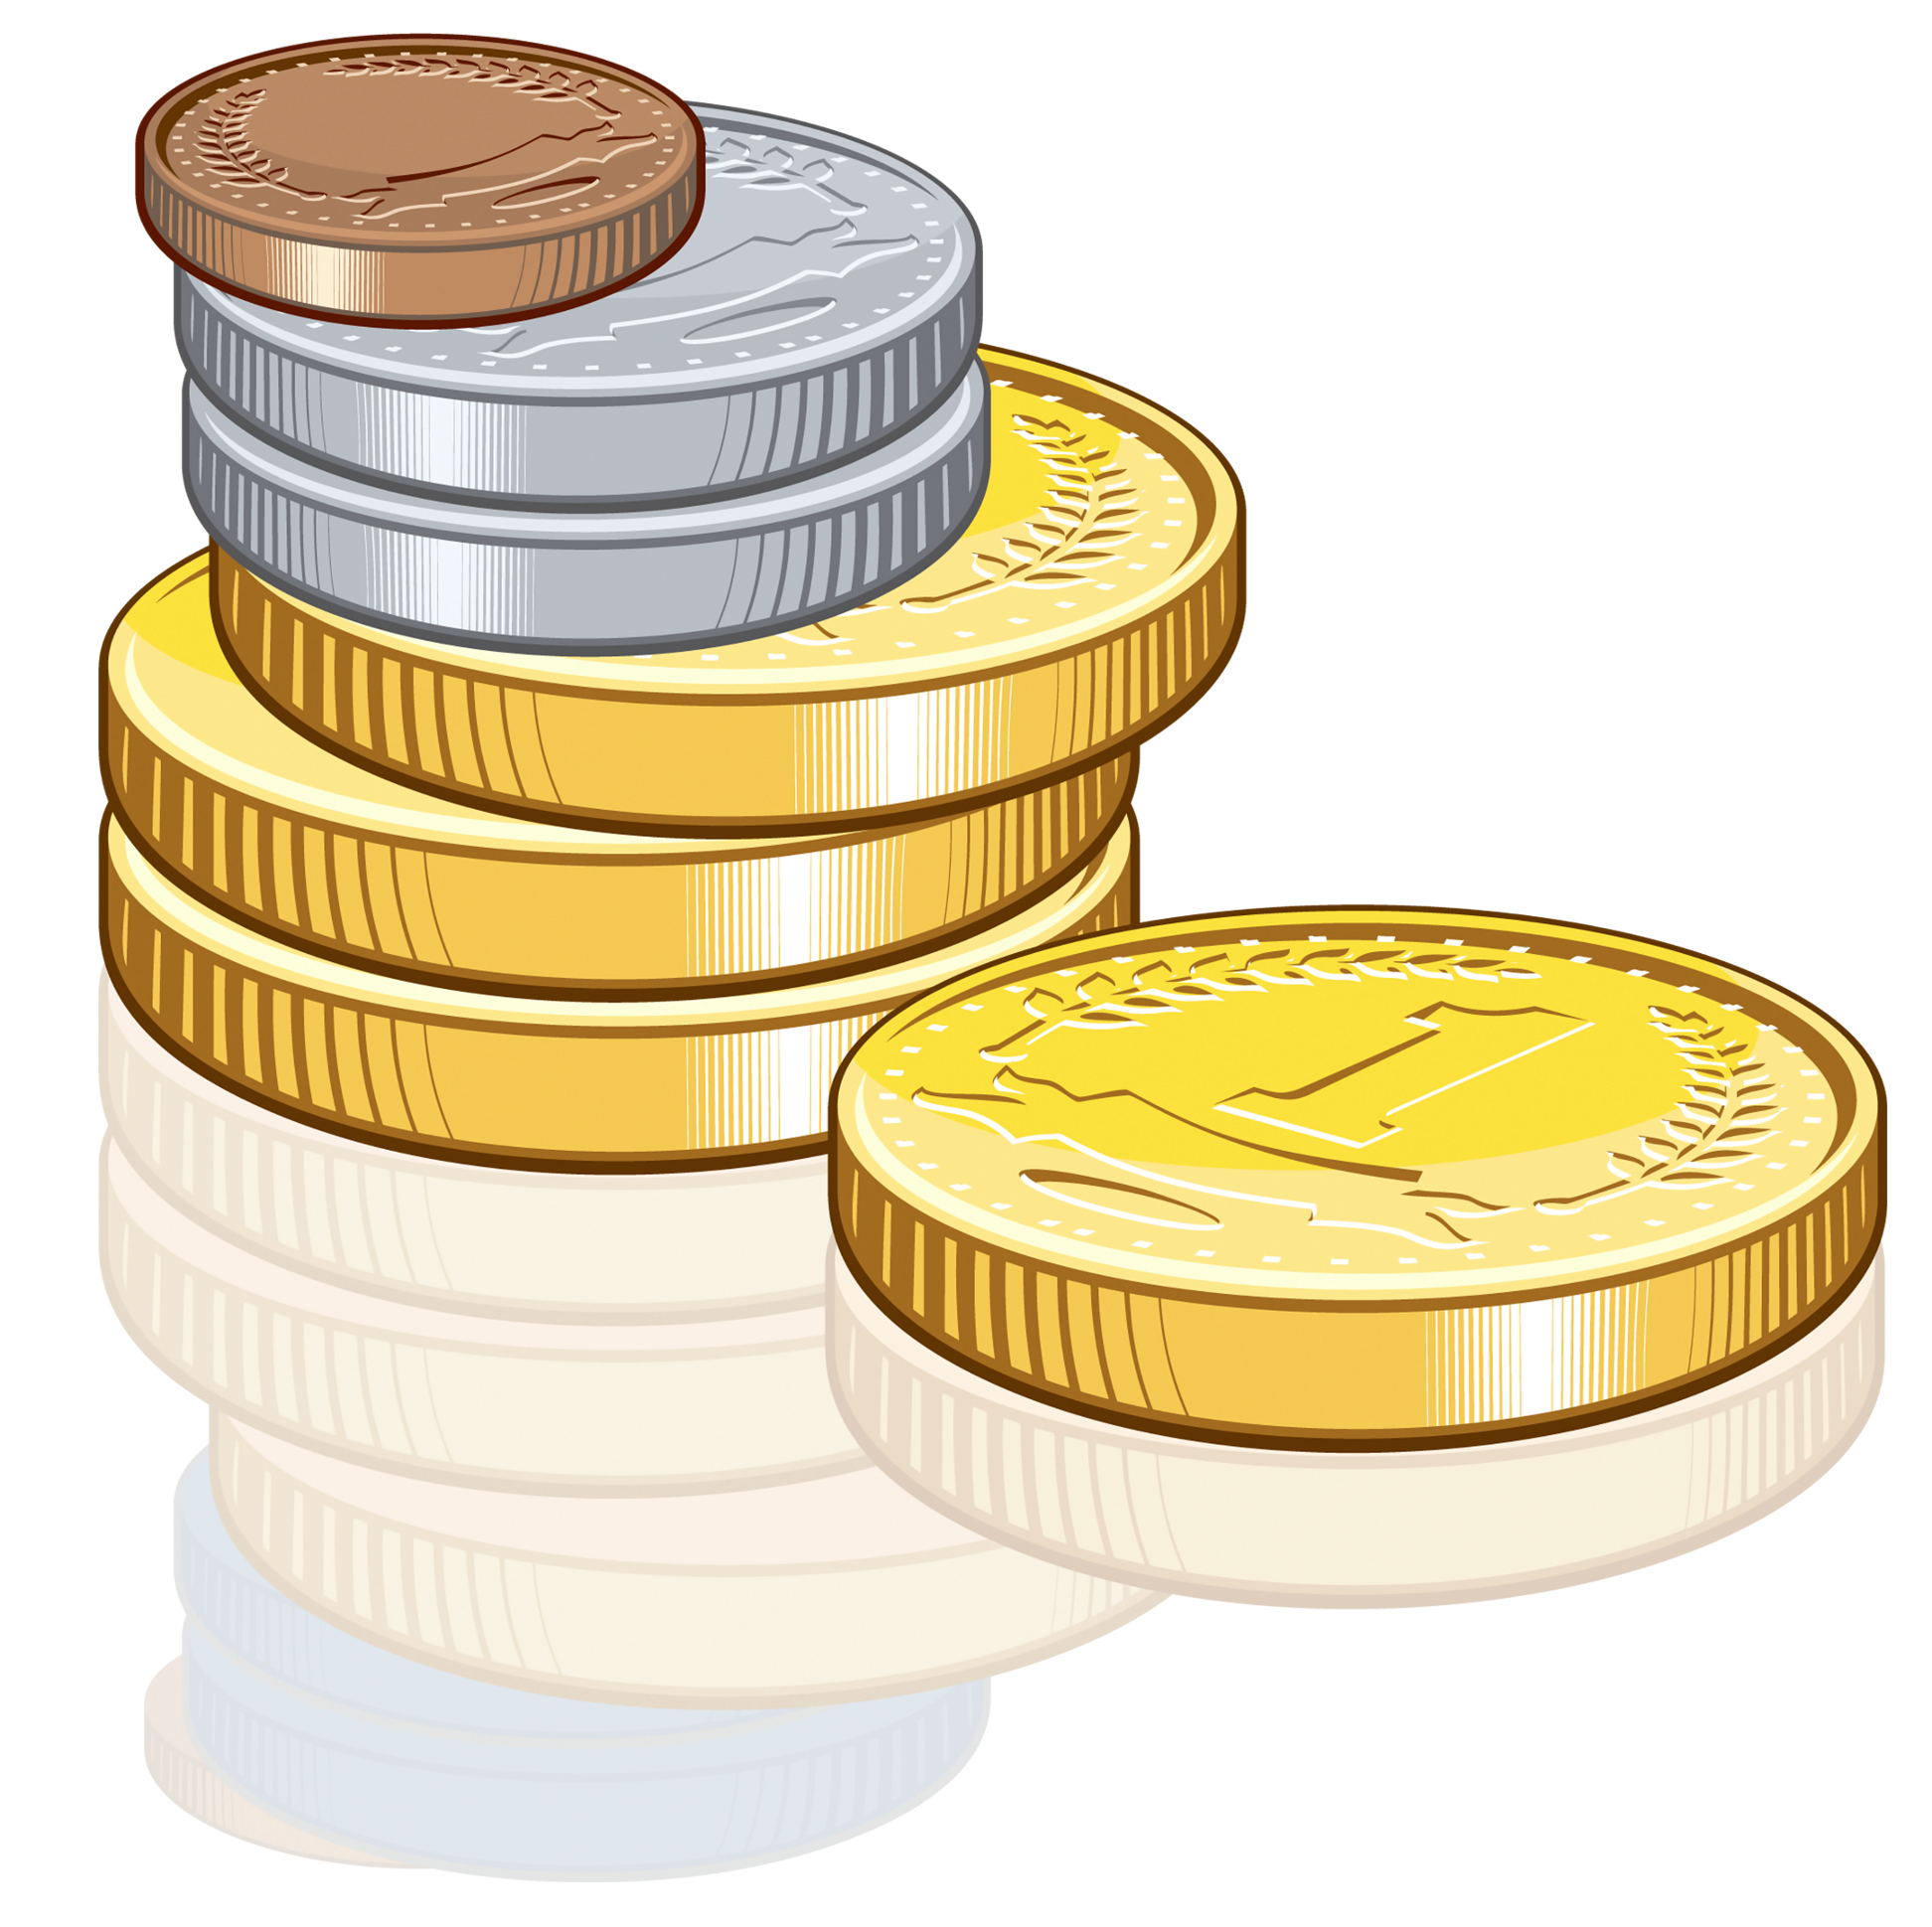 2017 clipart money picture free stock Android app clipart changer - ClipartFox picture free stock